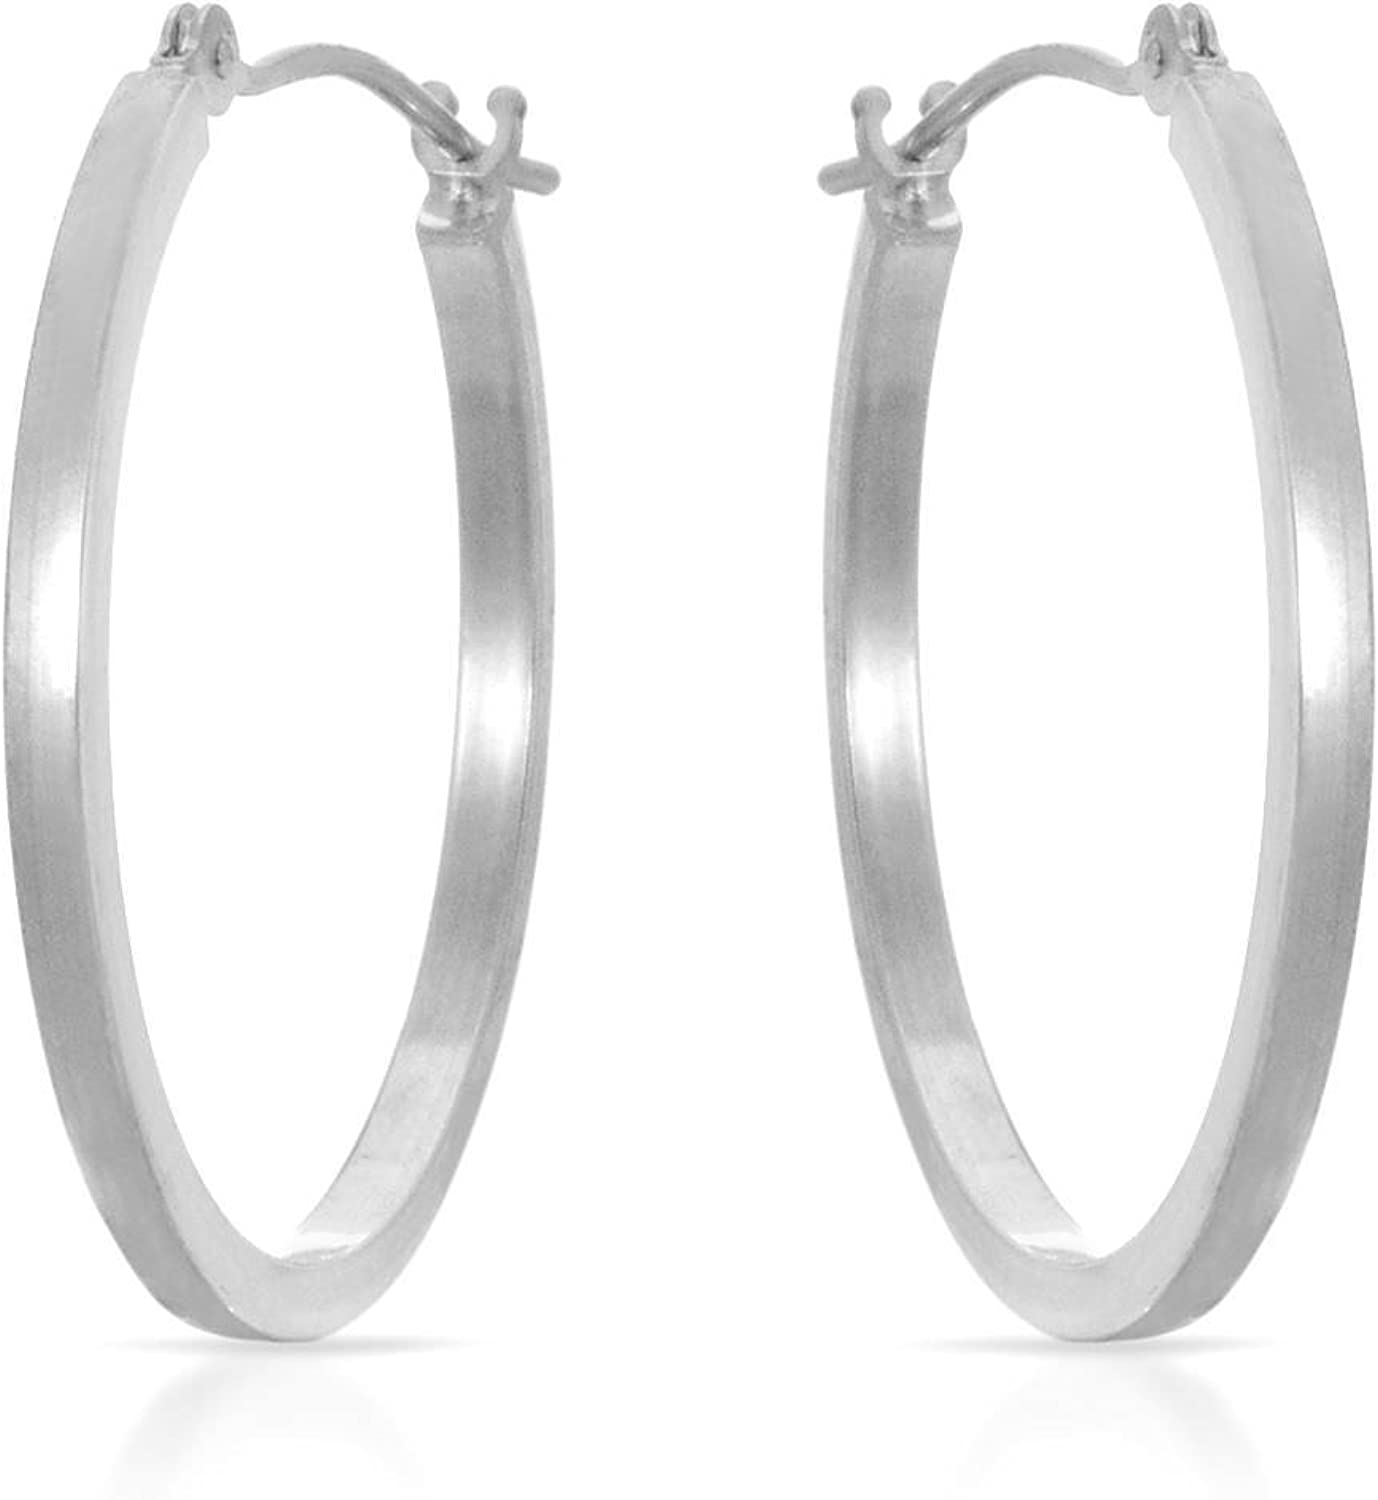 MCS sale Jewelry 14 Karat White Gold Complete Free Shipping Earrings Diame Tube Hoop Square